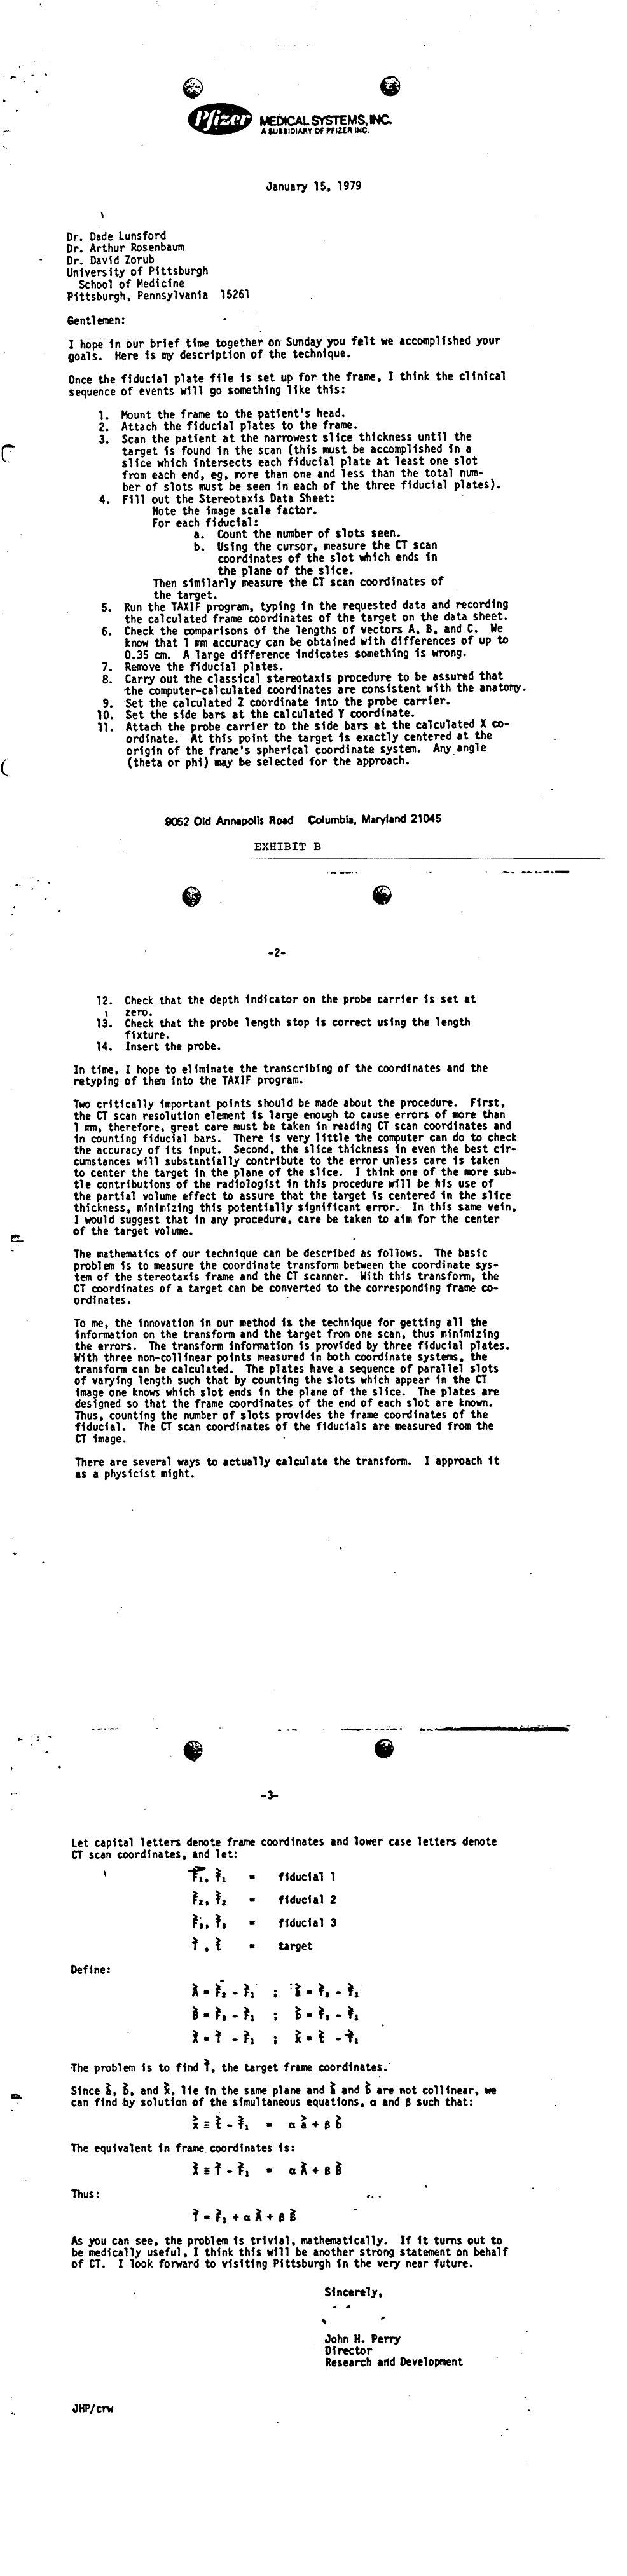 Appendix-1:-John-Perry-Letter,-pp.-1-3,-January-15,-1979